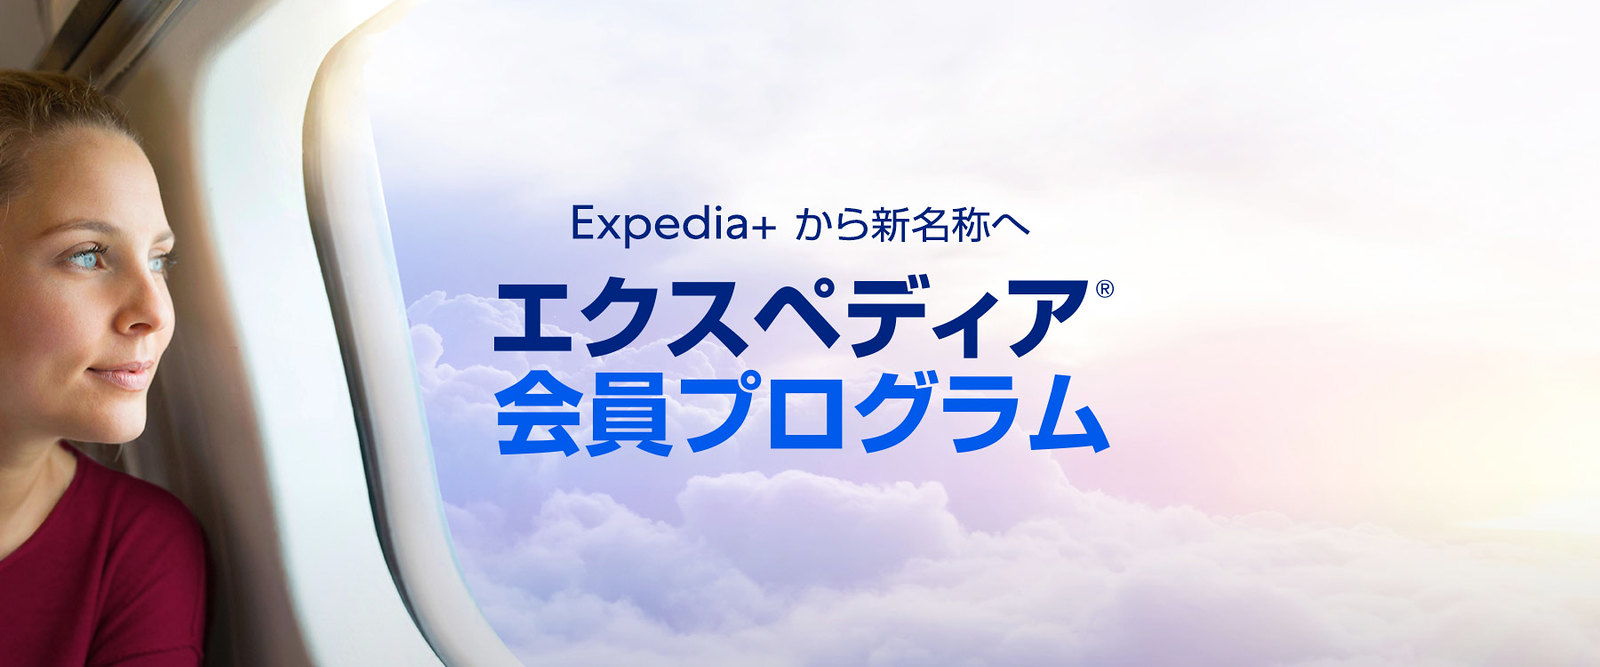 expedia-rewards-jp-600x250